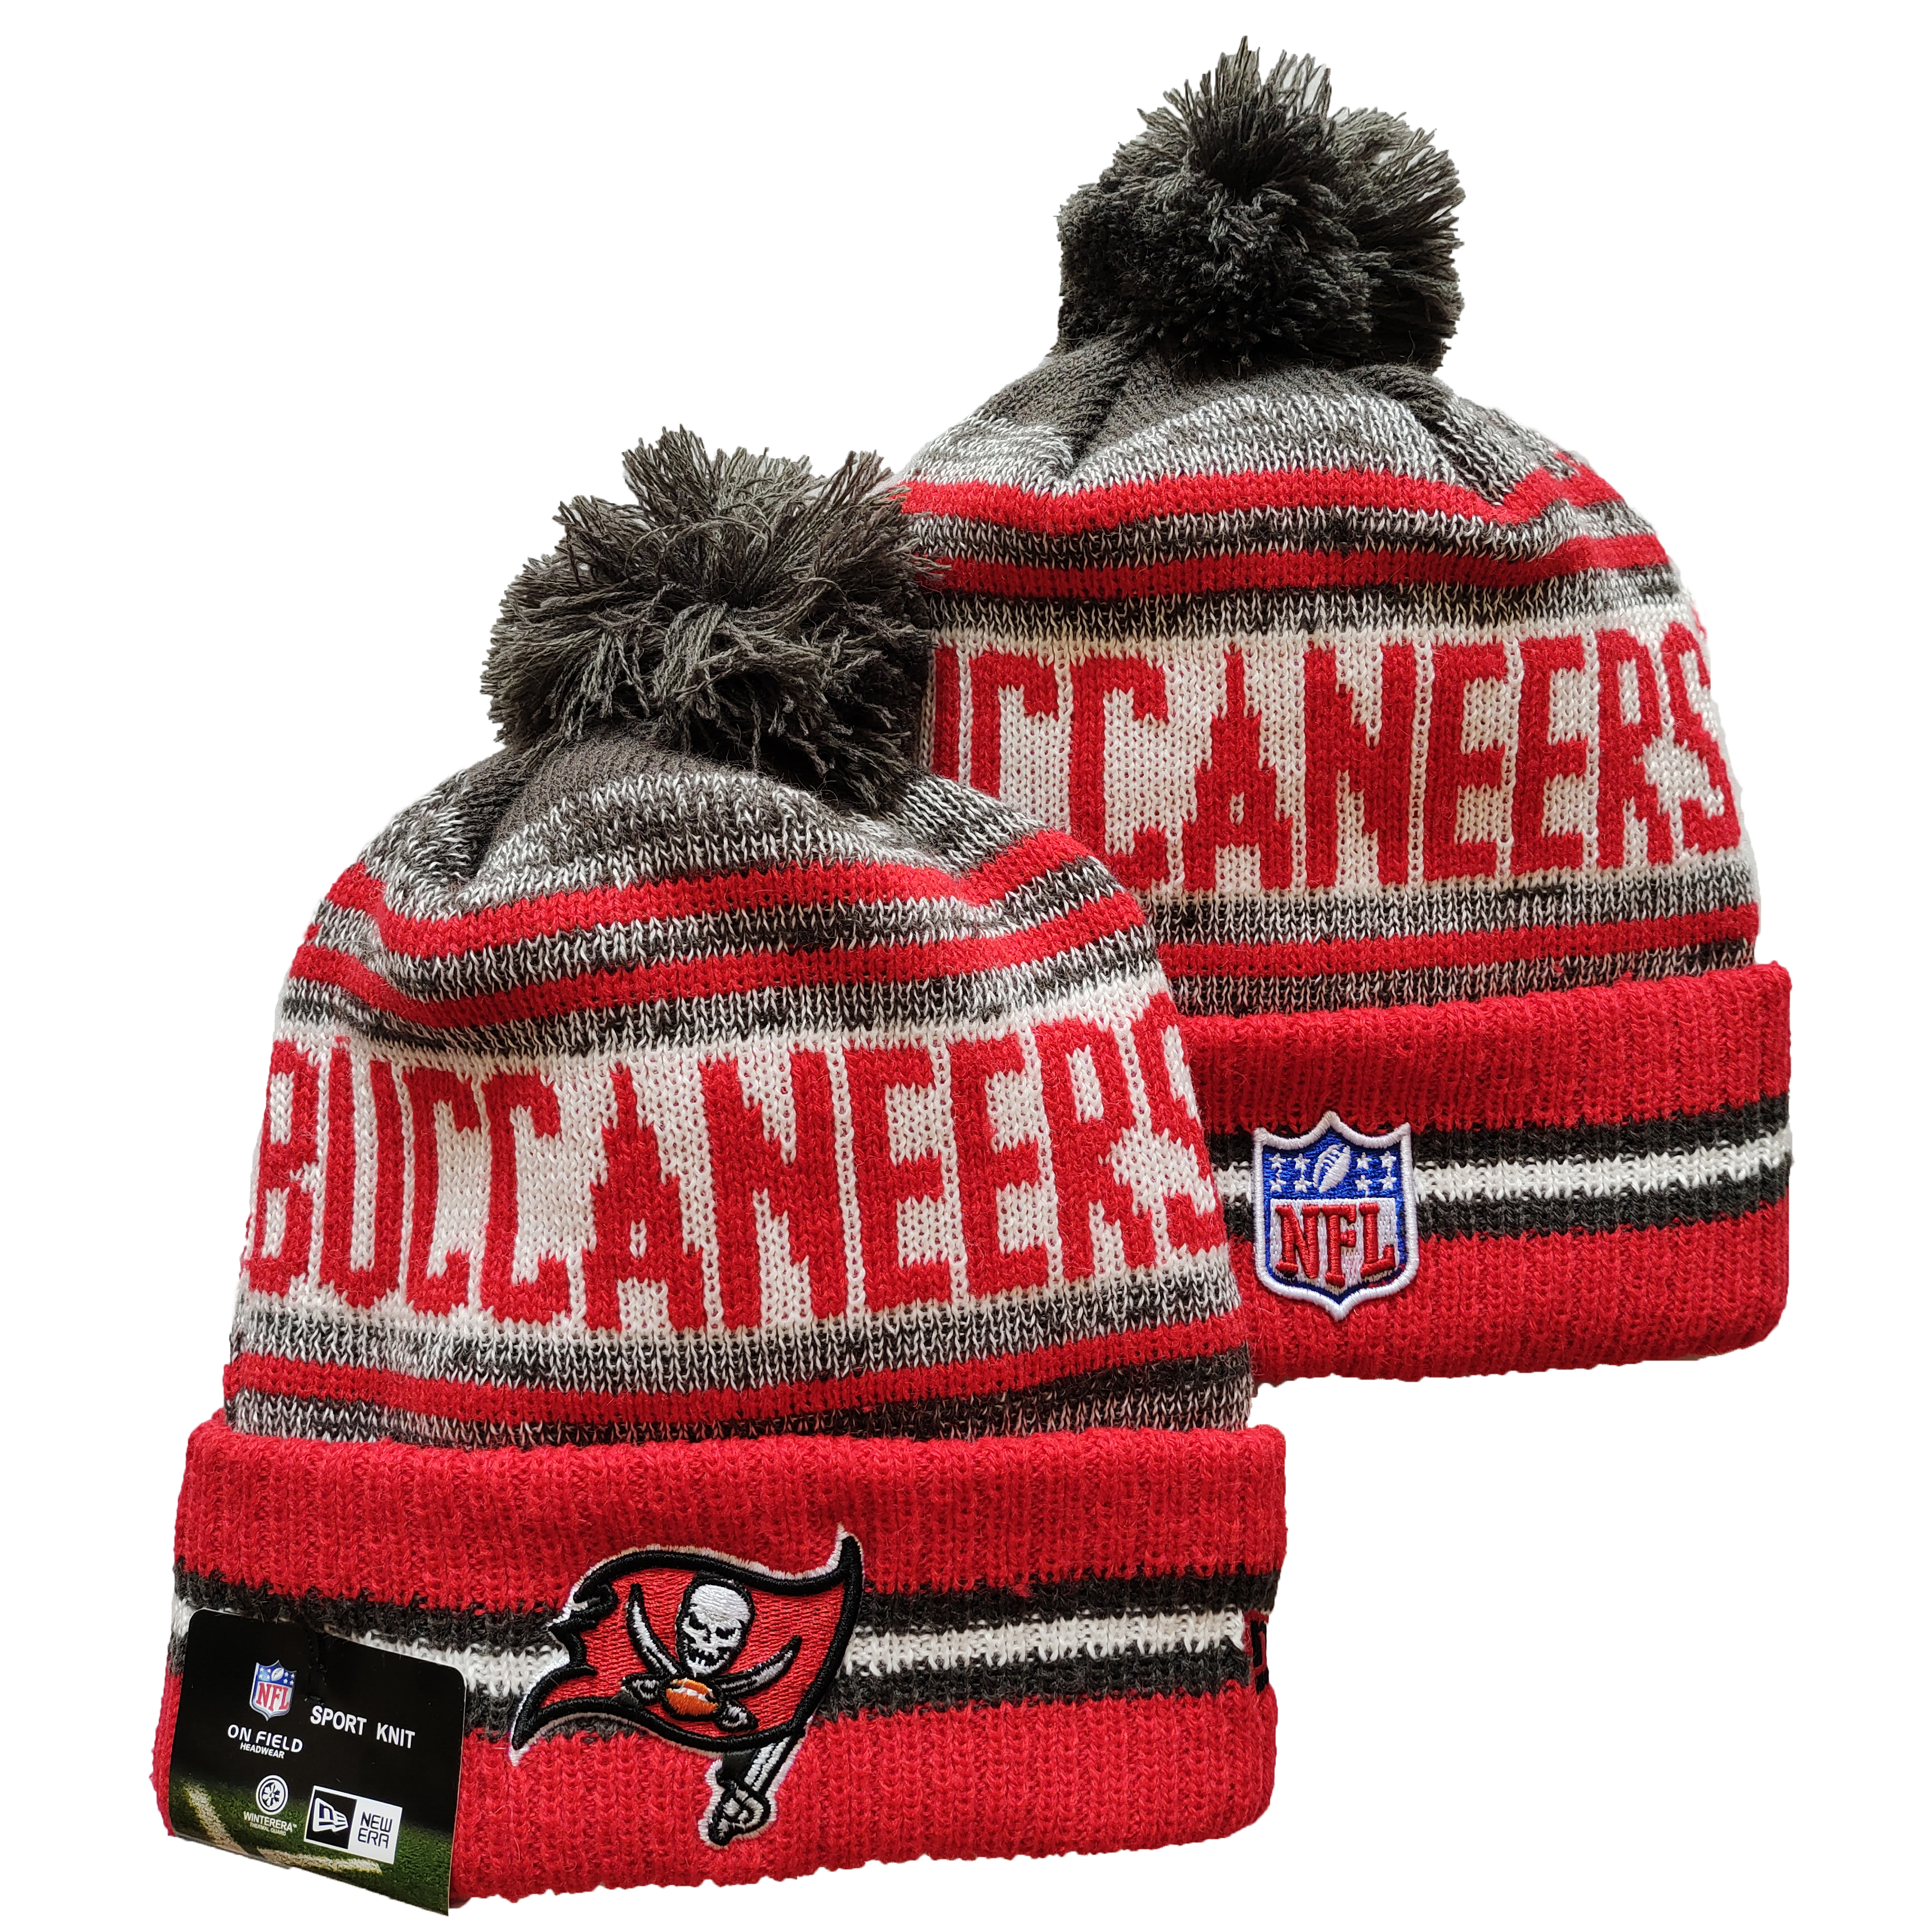 Buccaneers Team Logo Red and Gray Pom Cuffed Knit Hat YD